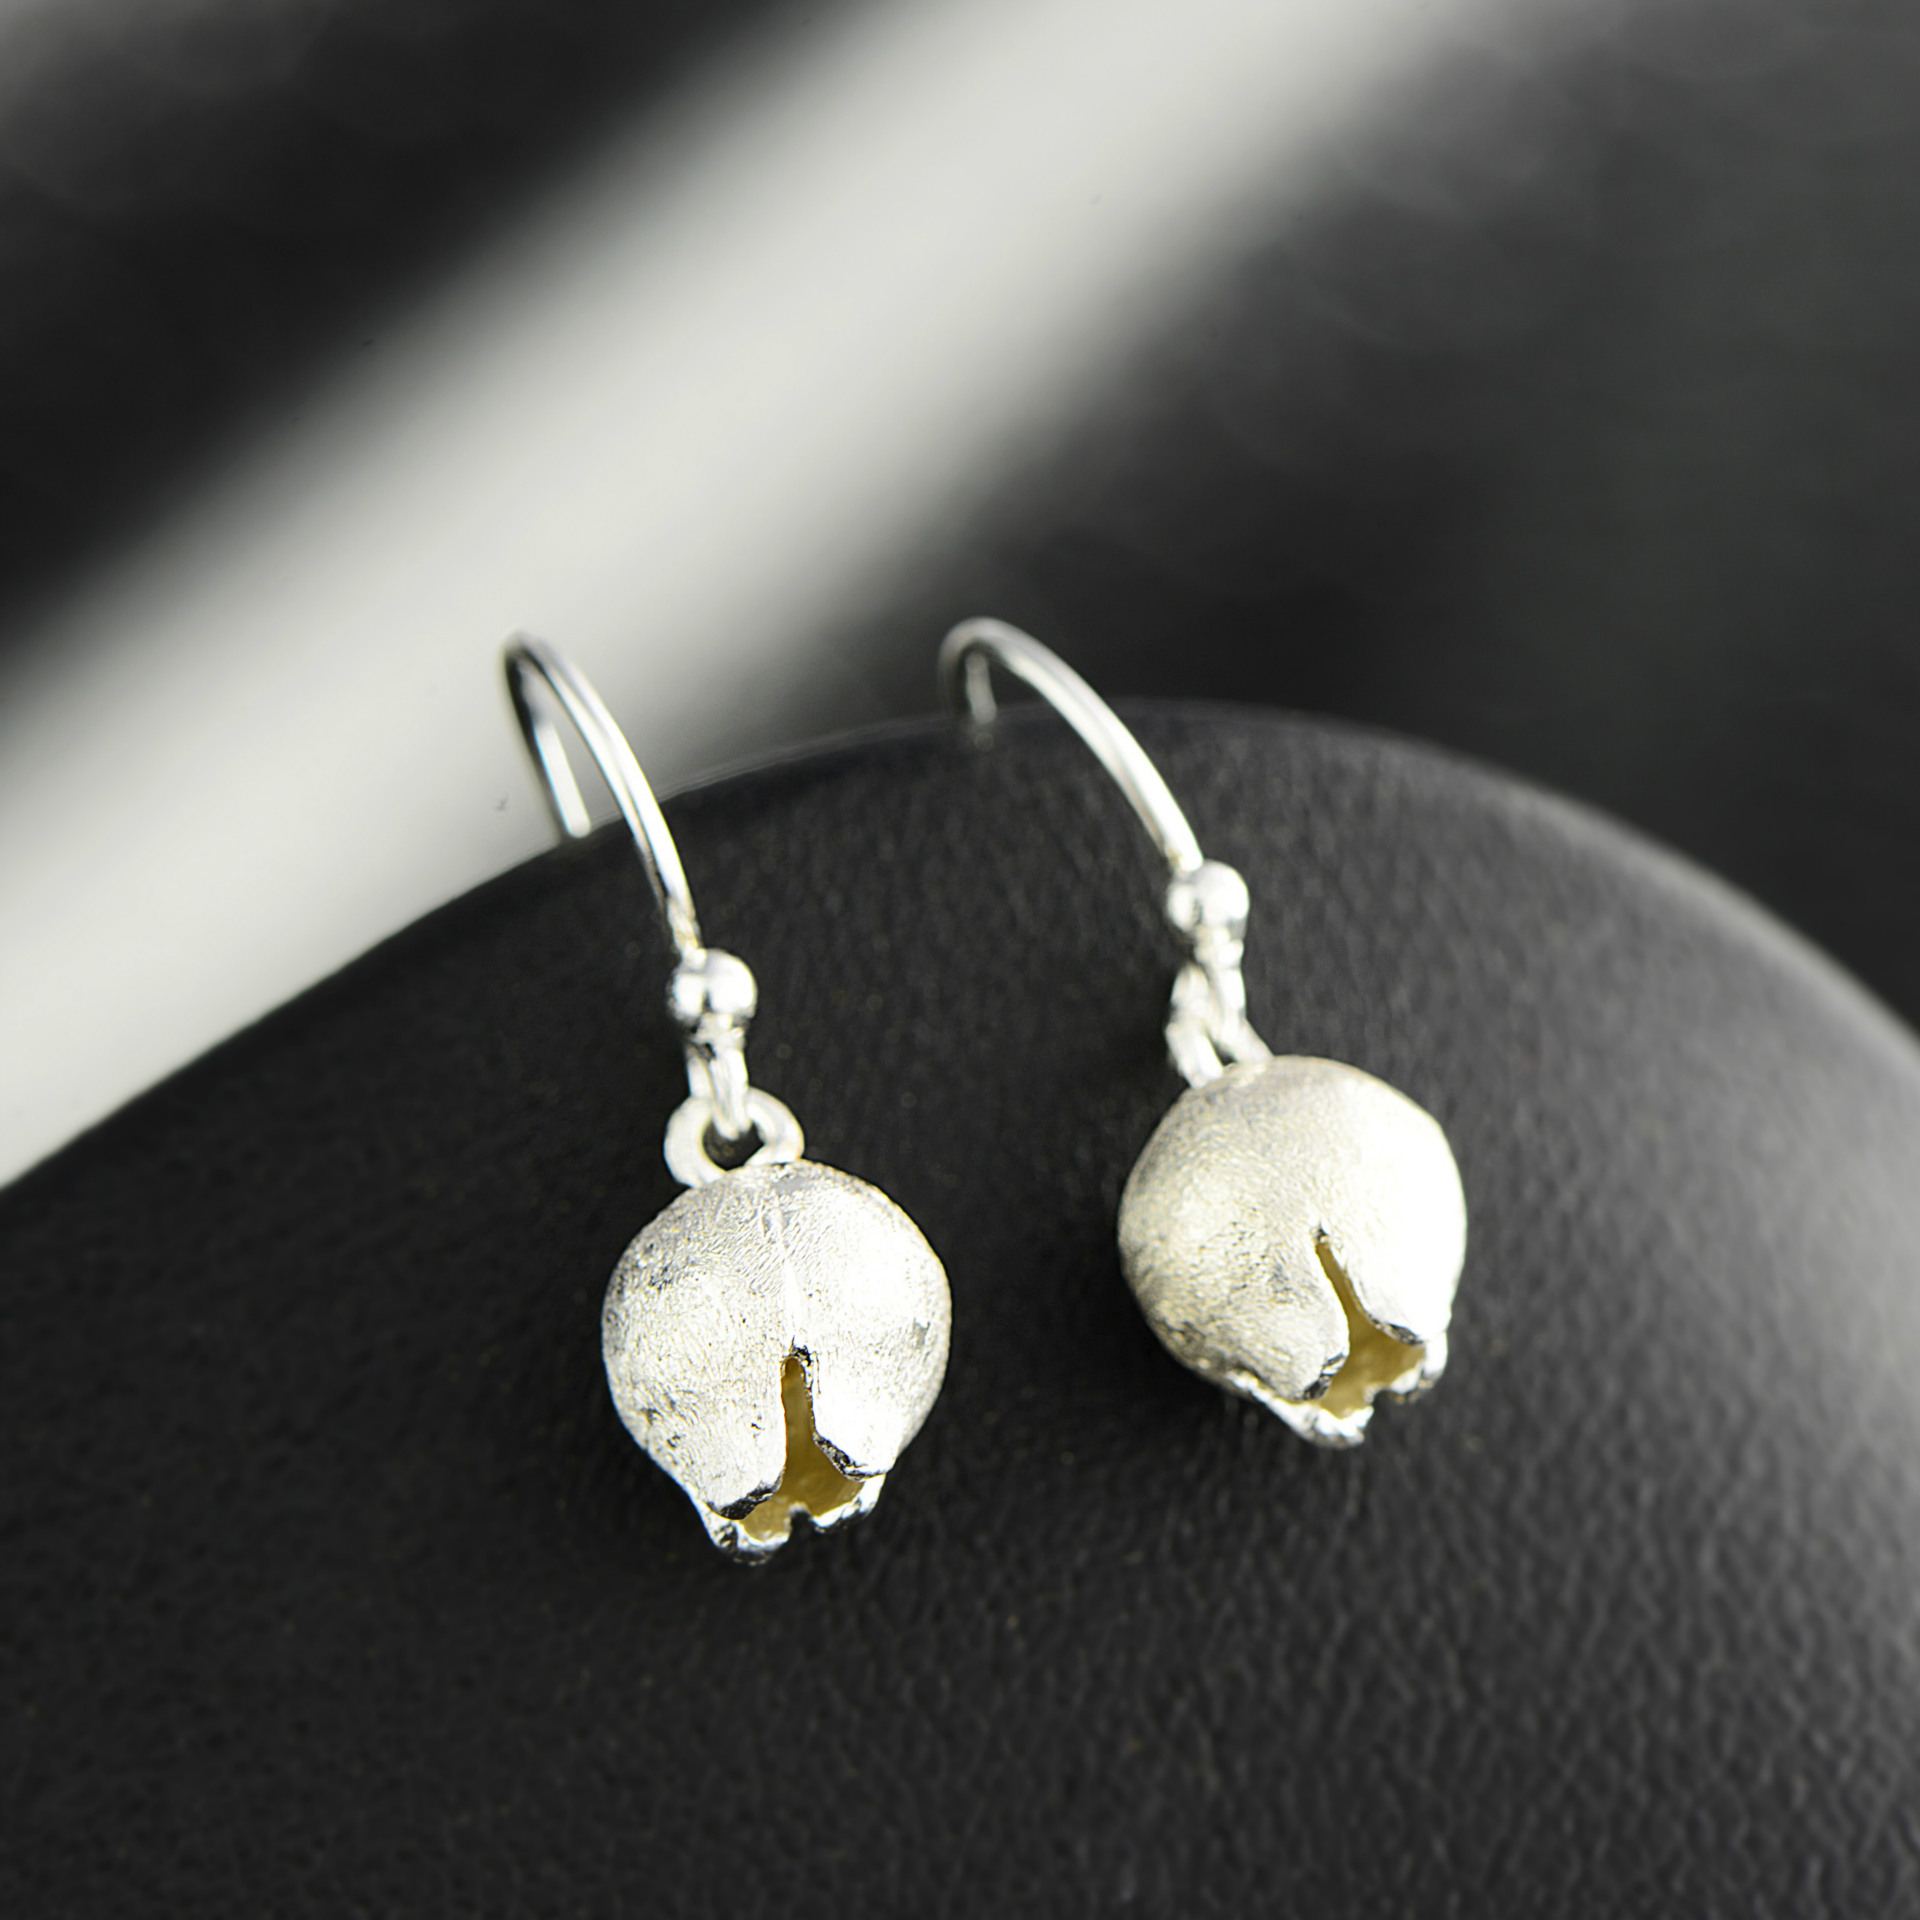 925 Tremella pendant grinding technology, beautiful small flower bud, female earrings, natural silver earrings. 925 female fashion earrings korean tremella nail earring japan hypoallergenic flower pearl earrings jewelry